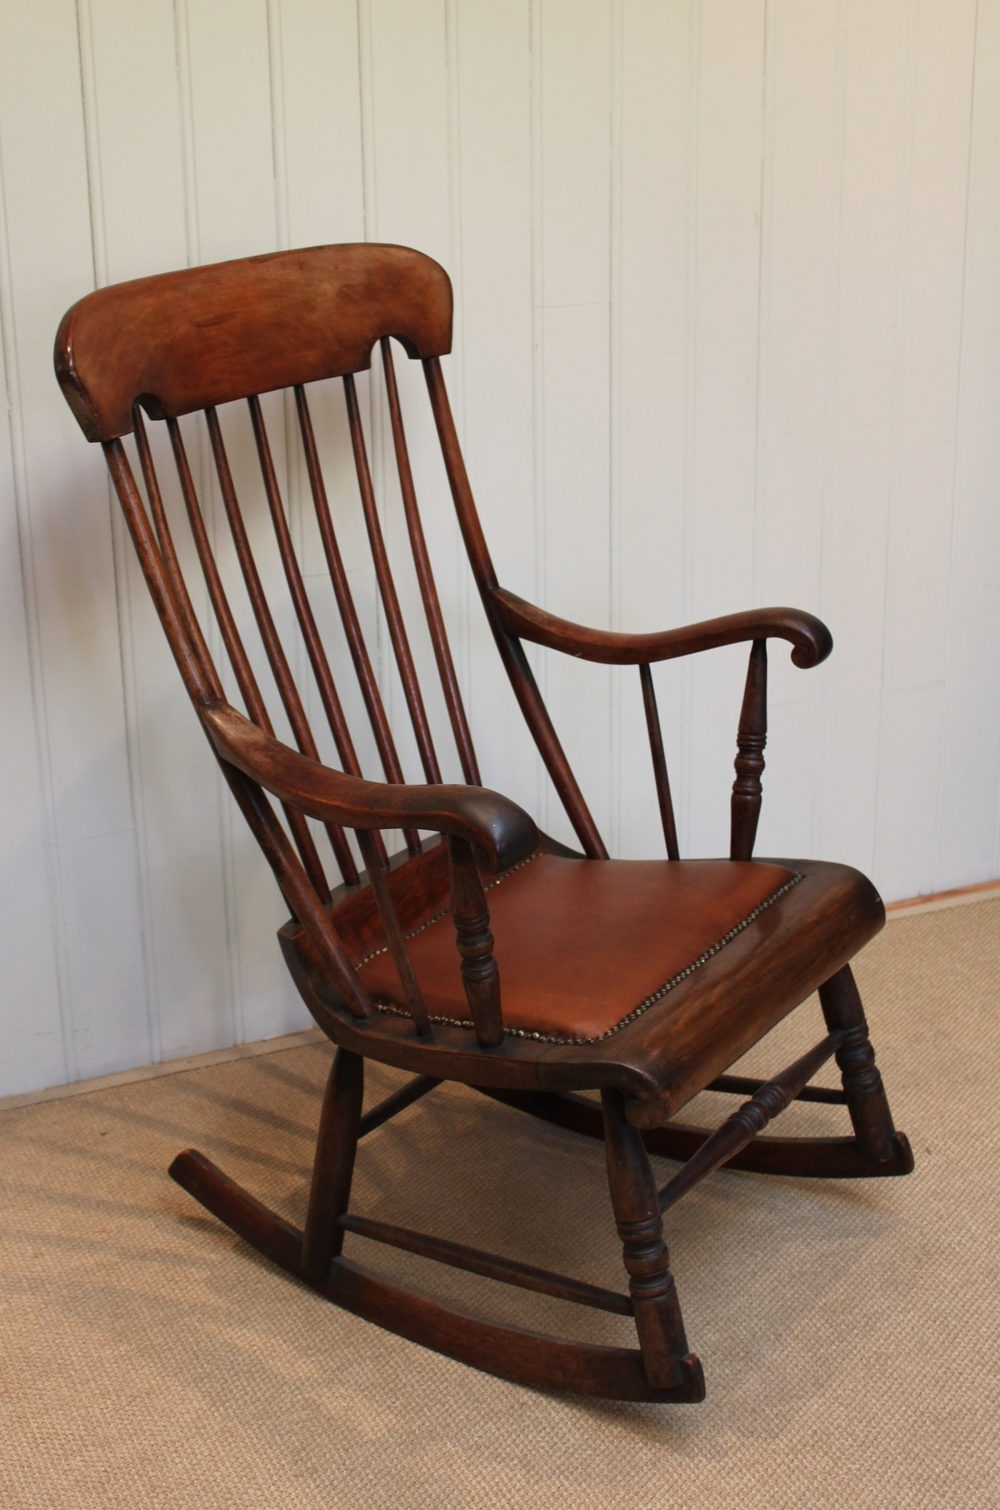 Victorian Fruitwood Rocking Chair – Antiques Atlas With Latest Victorian Rocking Chairs (View 12 of 15)